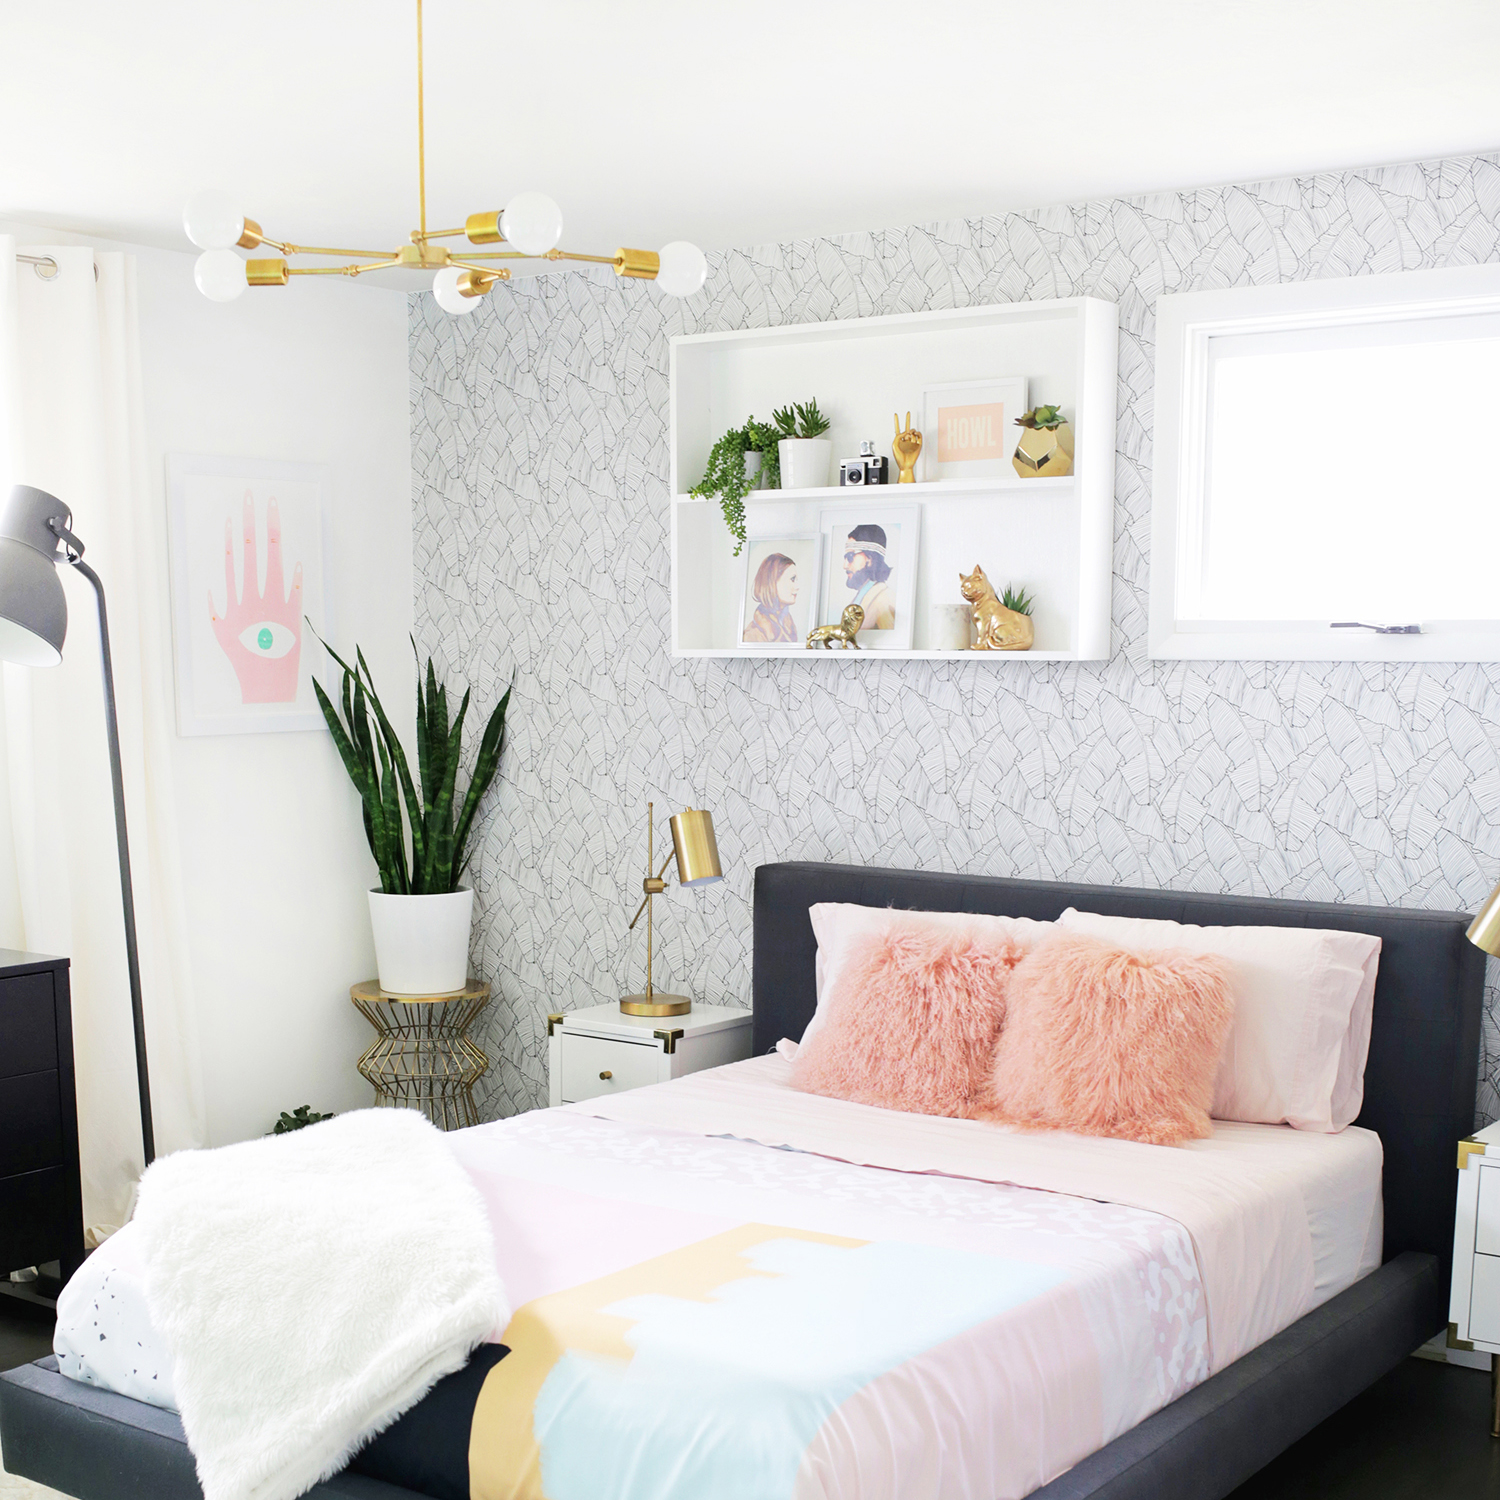 Before And After Pictures Of Bedroom Makeovers Bedroom Ideas Pinterest Diy Boy Lamps For Bedroom Anime Fan Bedroom: Master Bedroom (Before + After